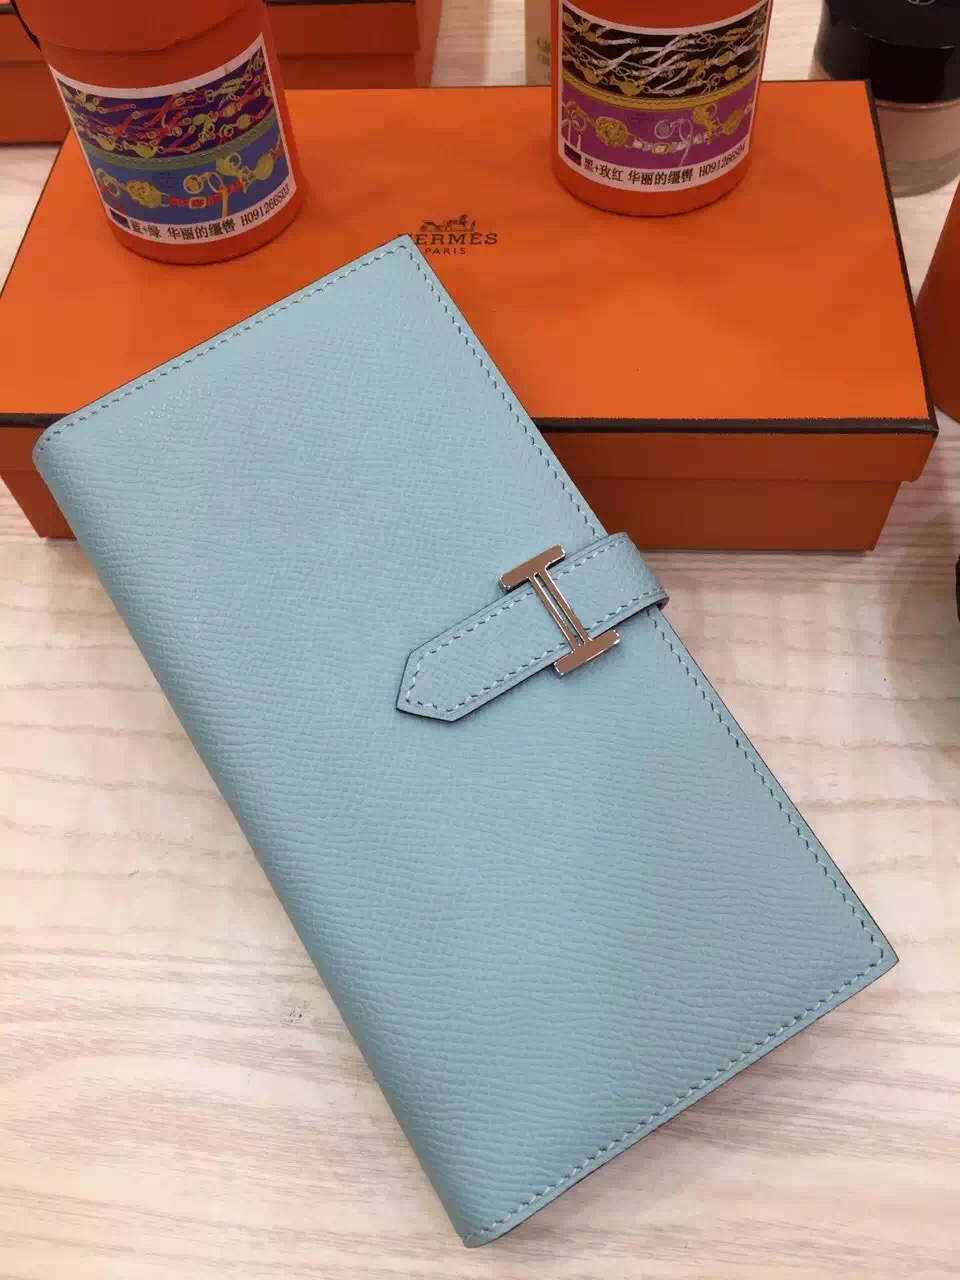 Hand Stitching Hermes Epsom Leather Bearn Wallet Clutch Bag in Lagon Blue